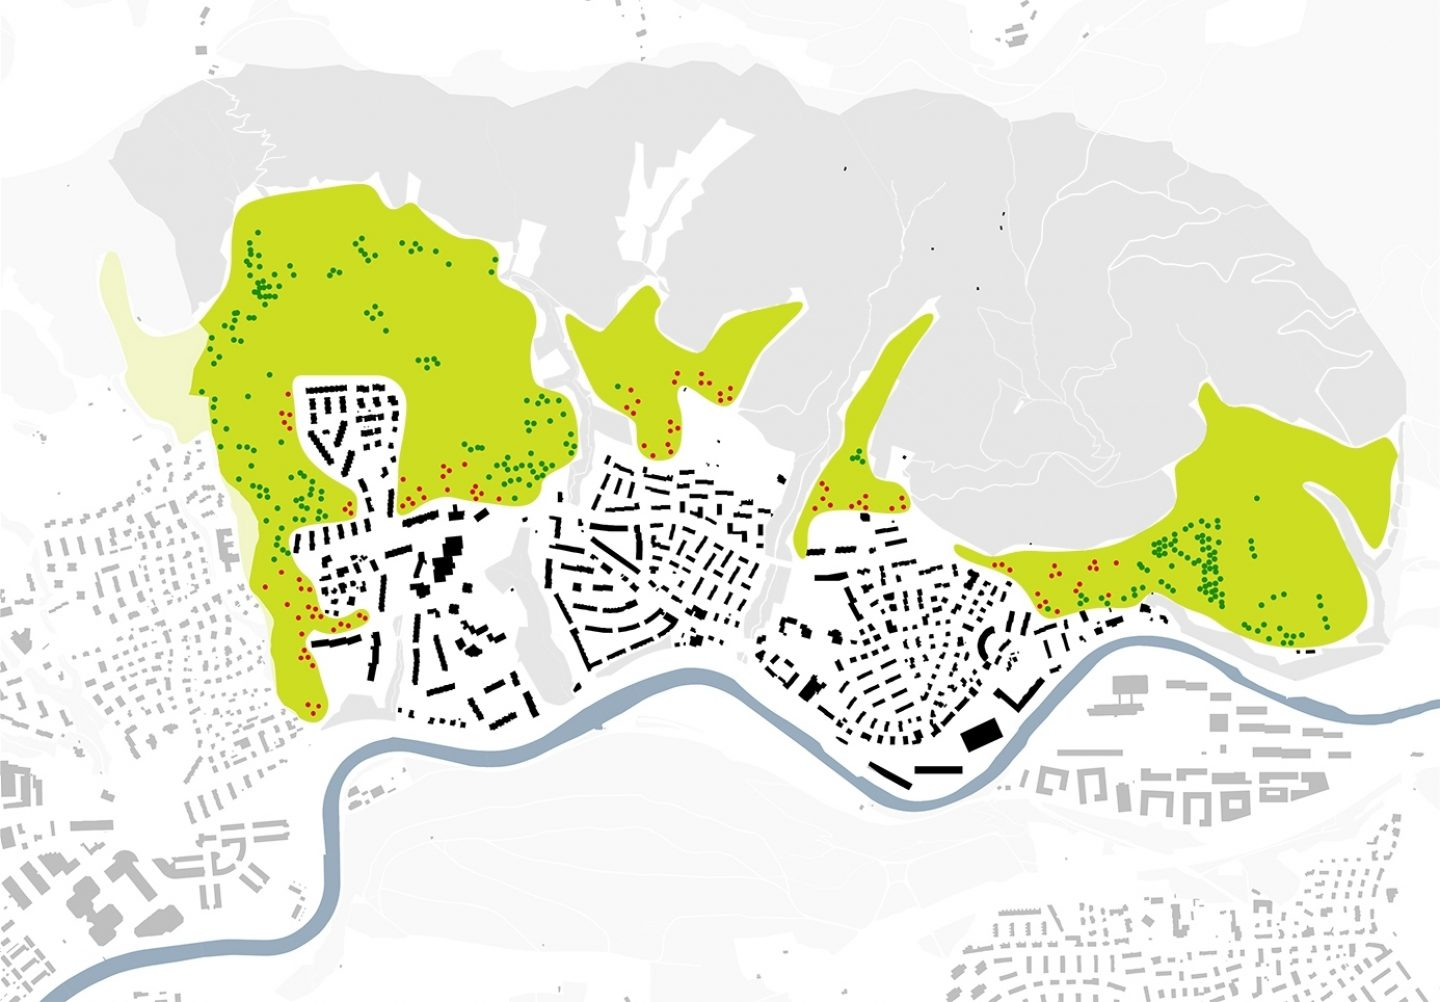 Leimbach Strategic Master Plan, Zürich. Hildebrand Studios AG, Architecture and Urban Design in Zurich, Switzerland